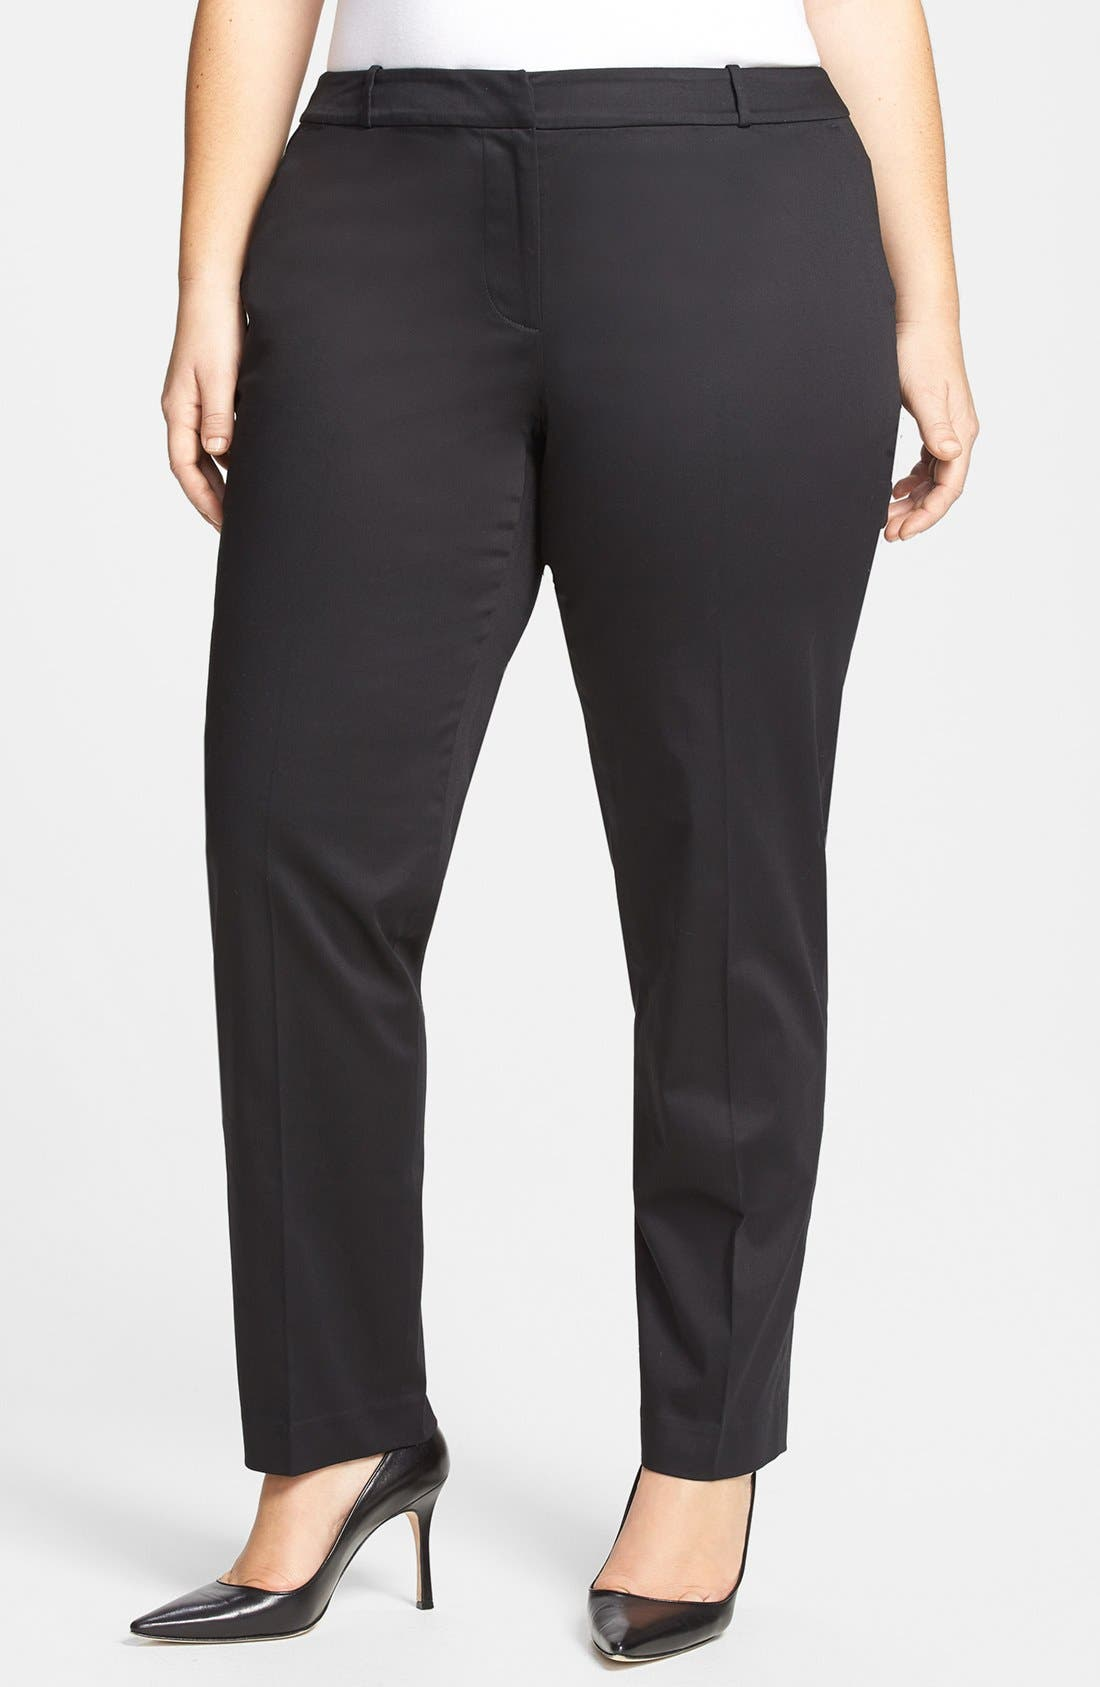 Alternate Image 1 Selected - MICHAEL Michael Kors 'Welles' Stretch Cotton Sateen Ankle Pants (Plus Size)